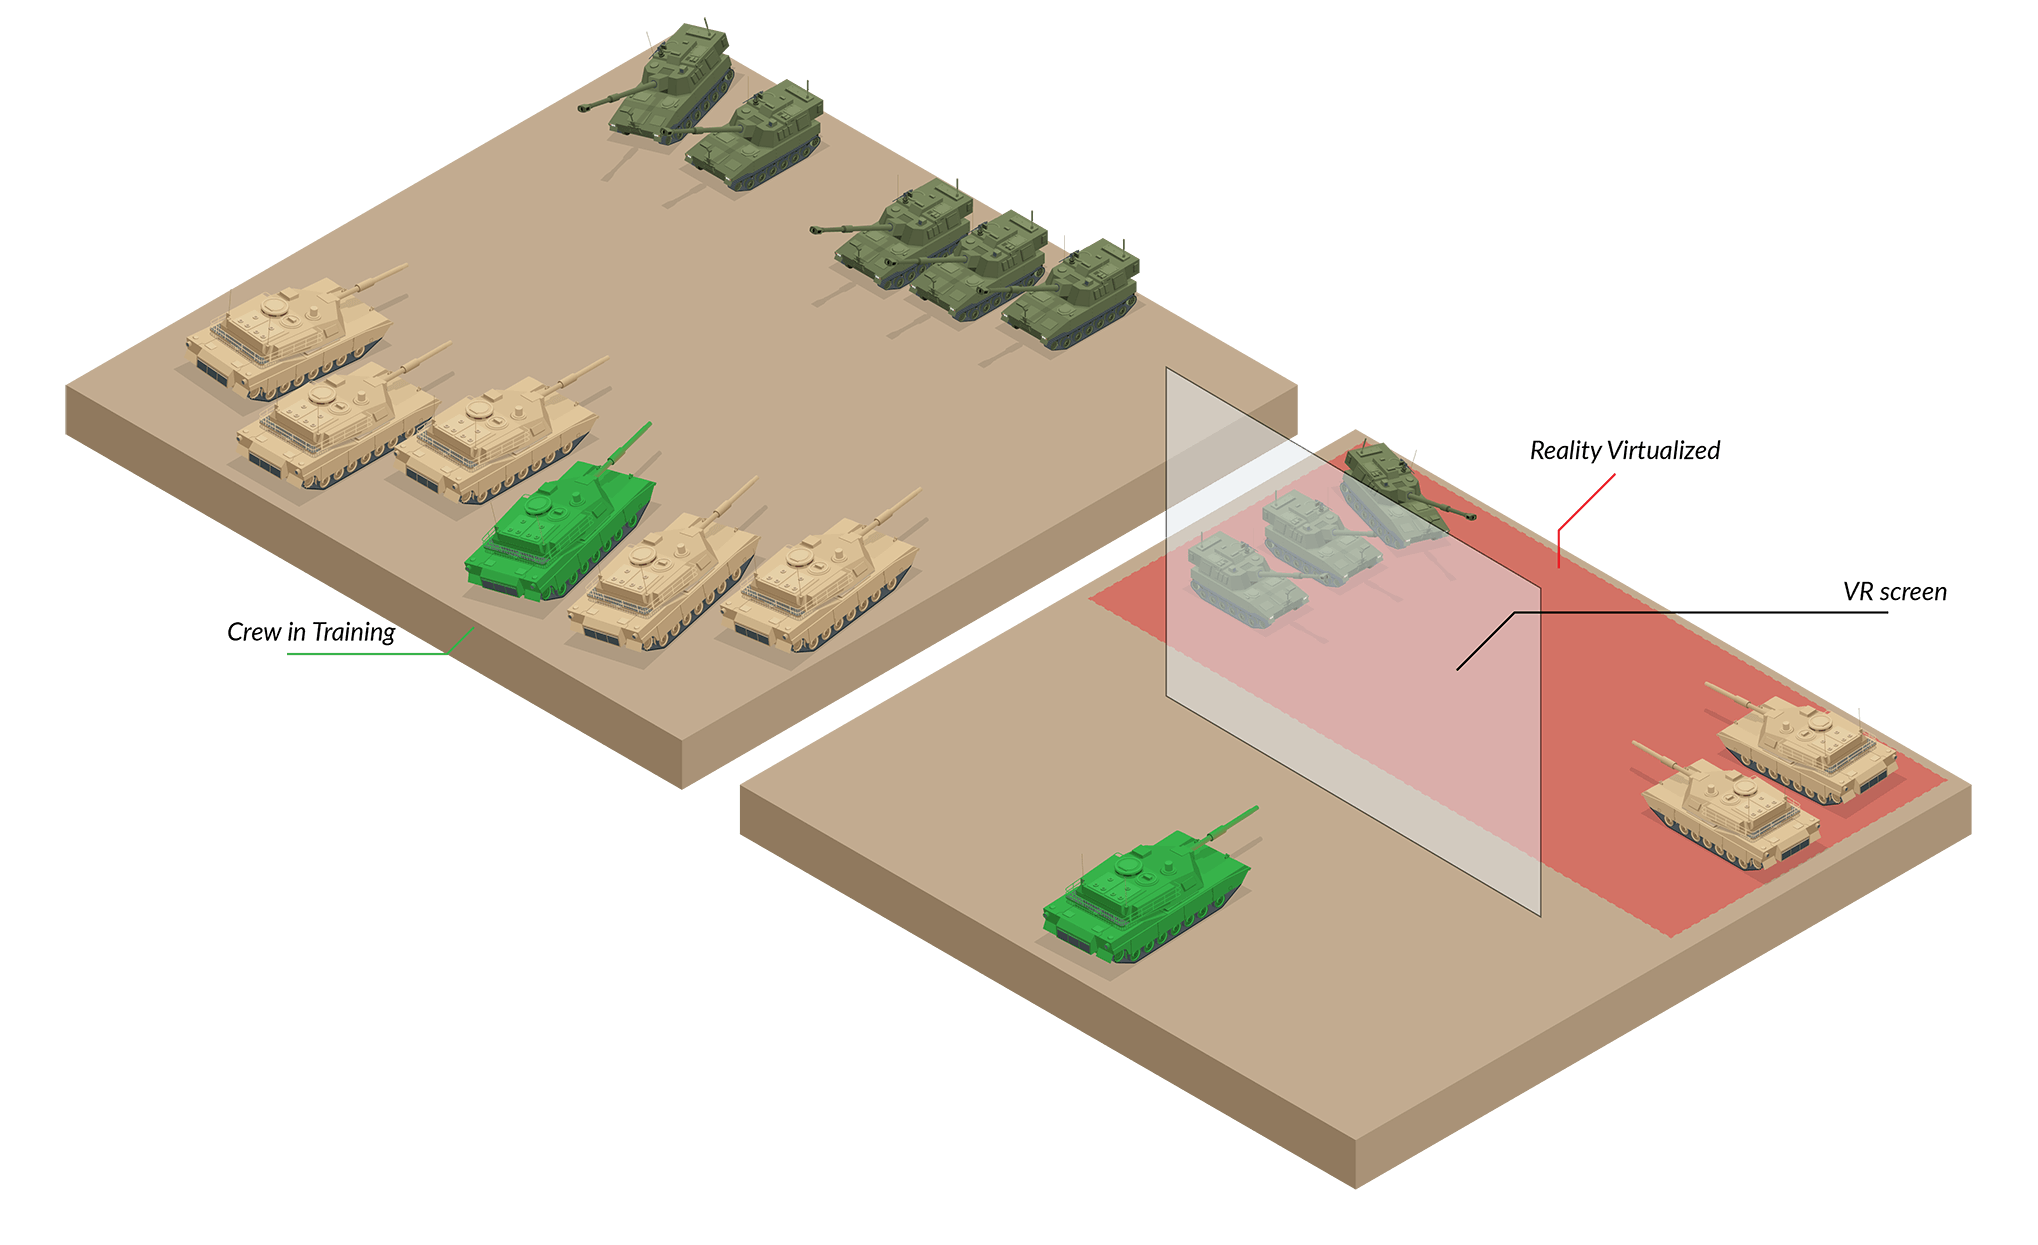 Two illustrations of tanks Left - Training in the field | Right - Training using test environment simulation